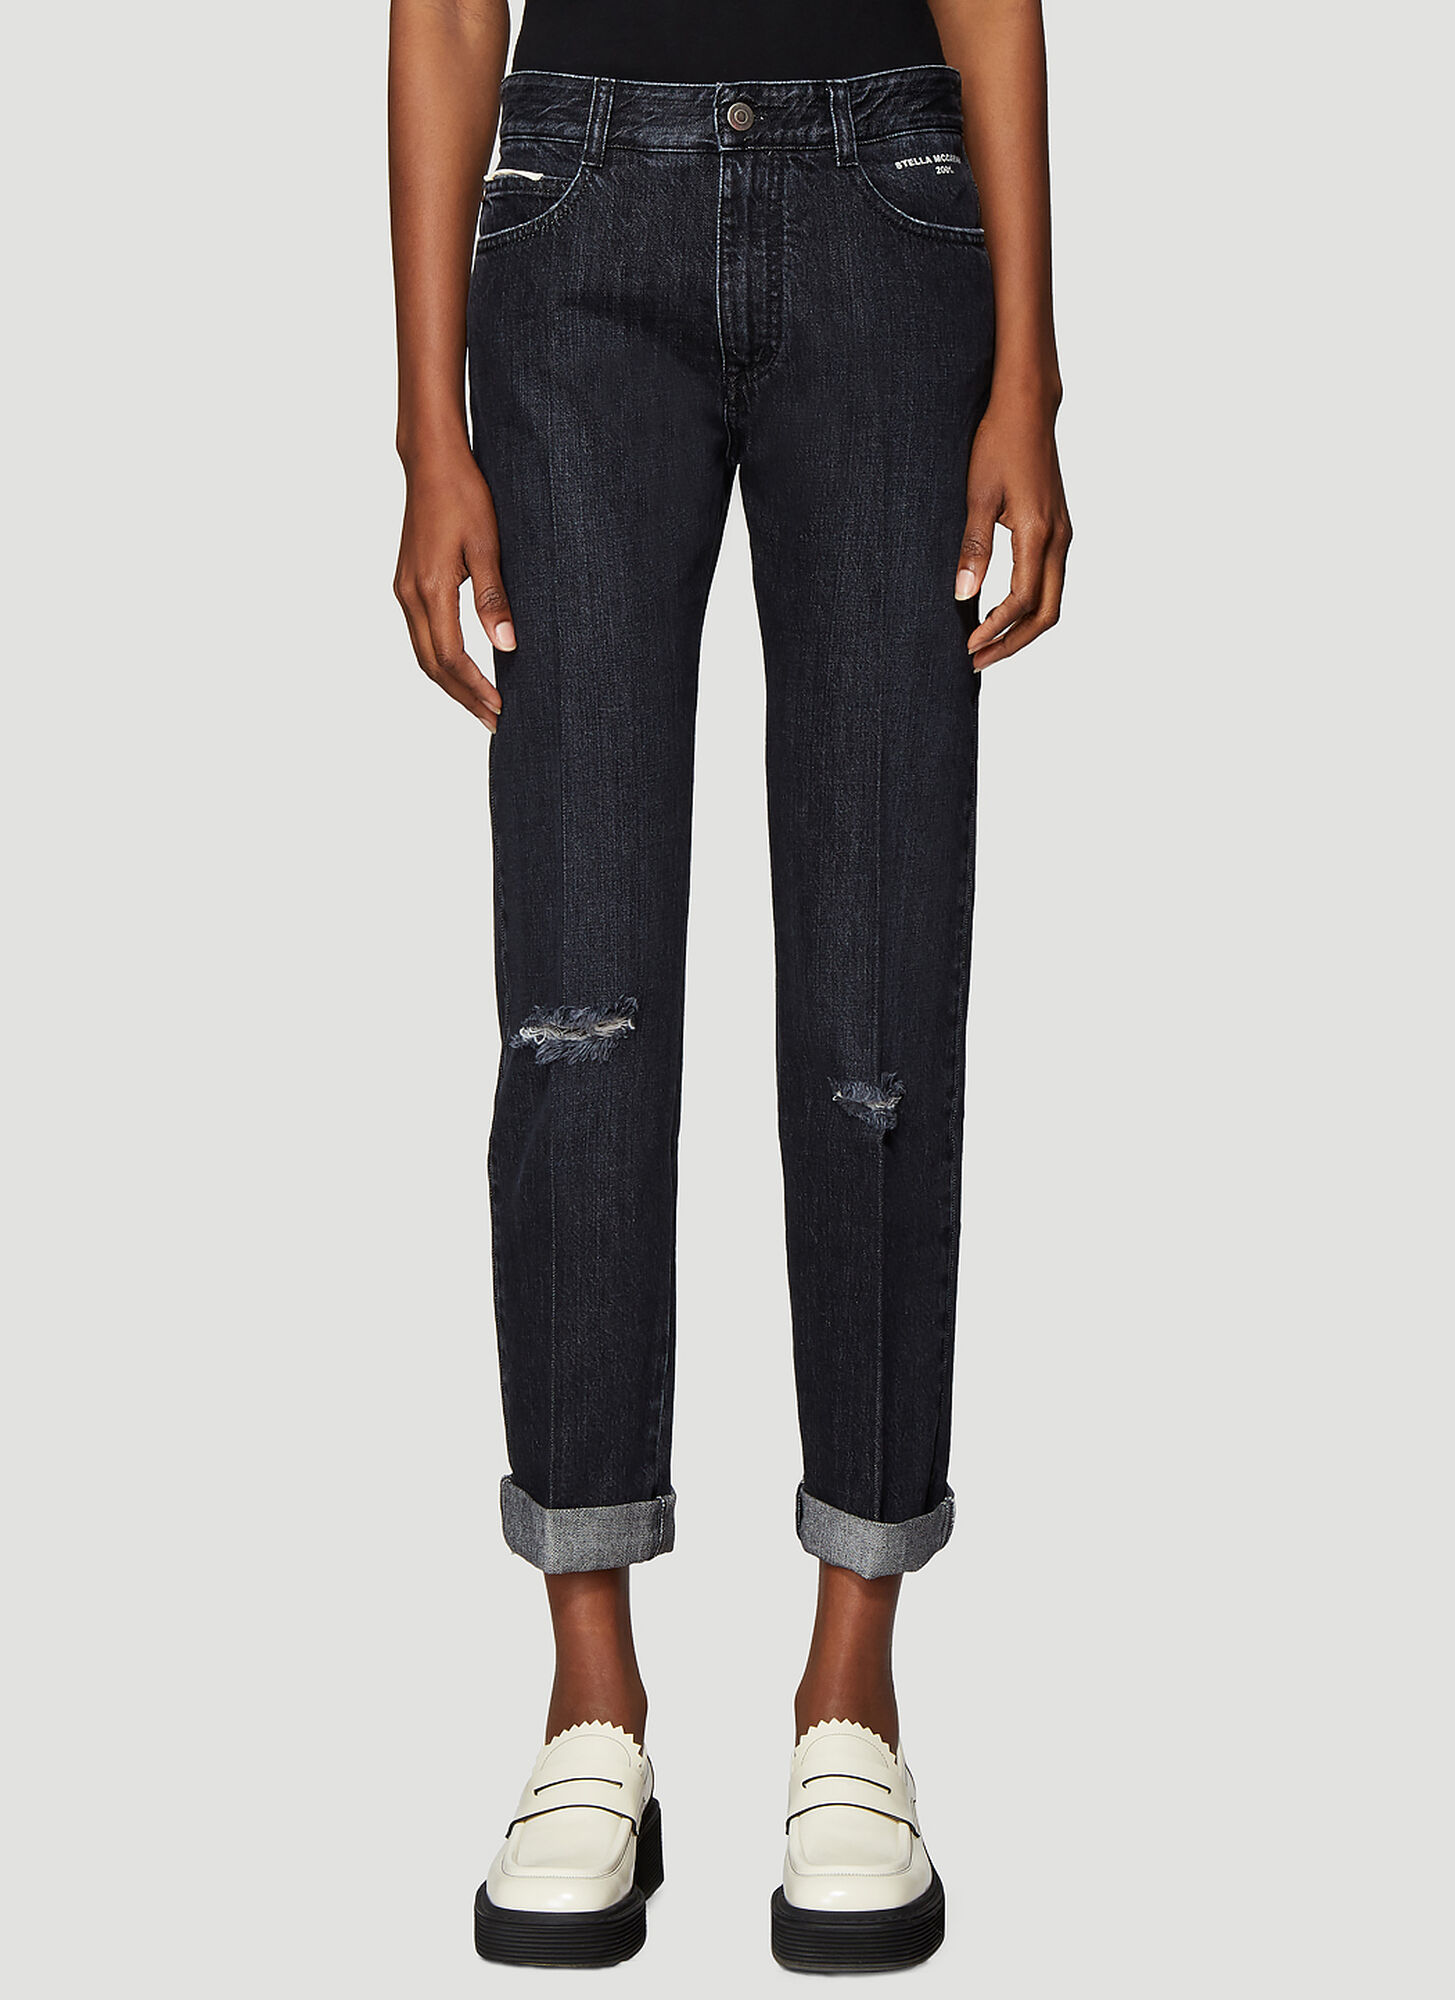 Stella McCartney Vintage Wash Jeans in Black